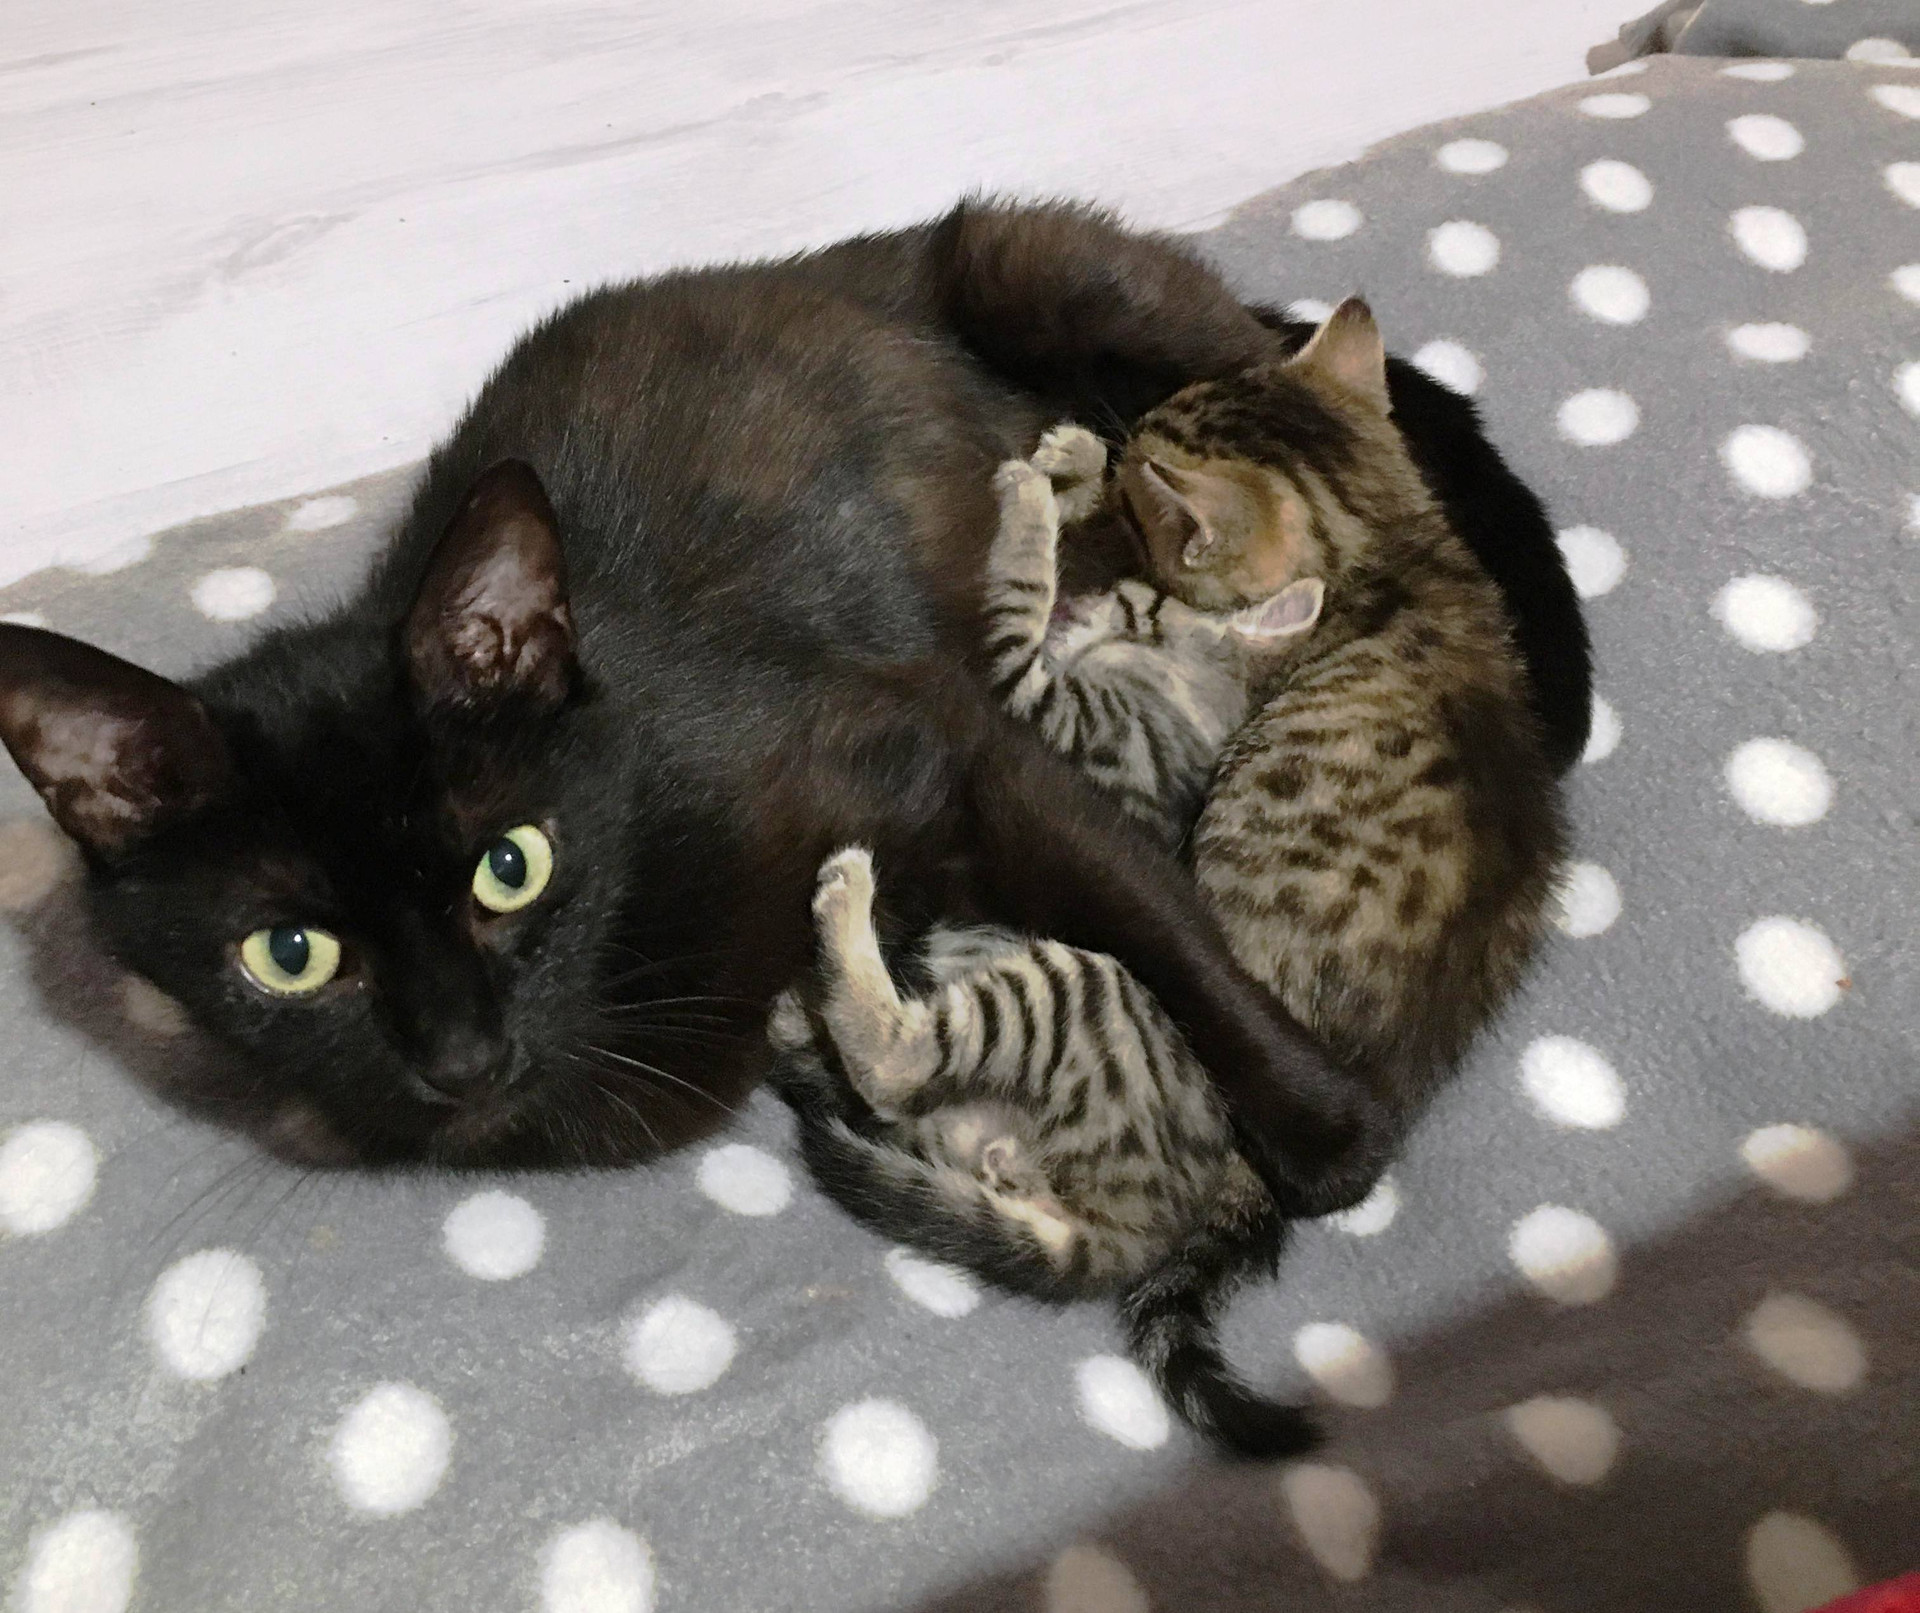 Lizzy et les chatons 27 mai.jpg